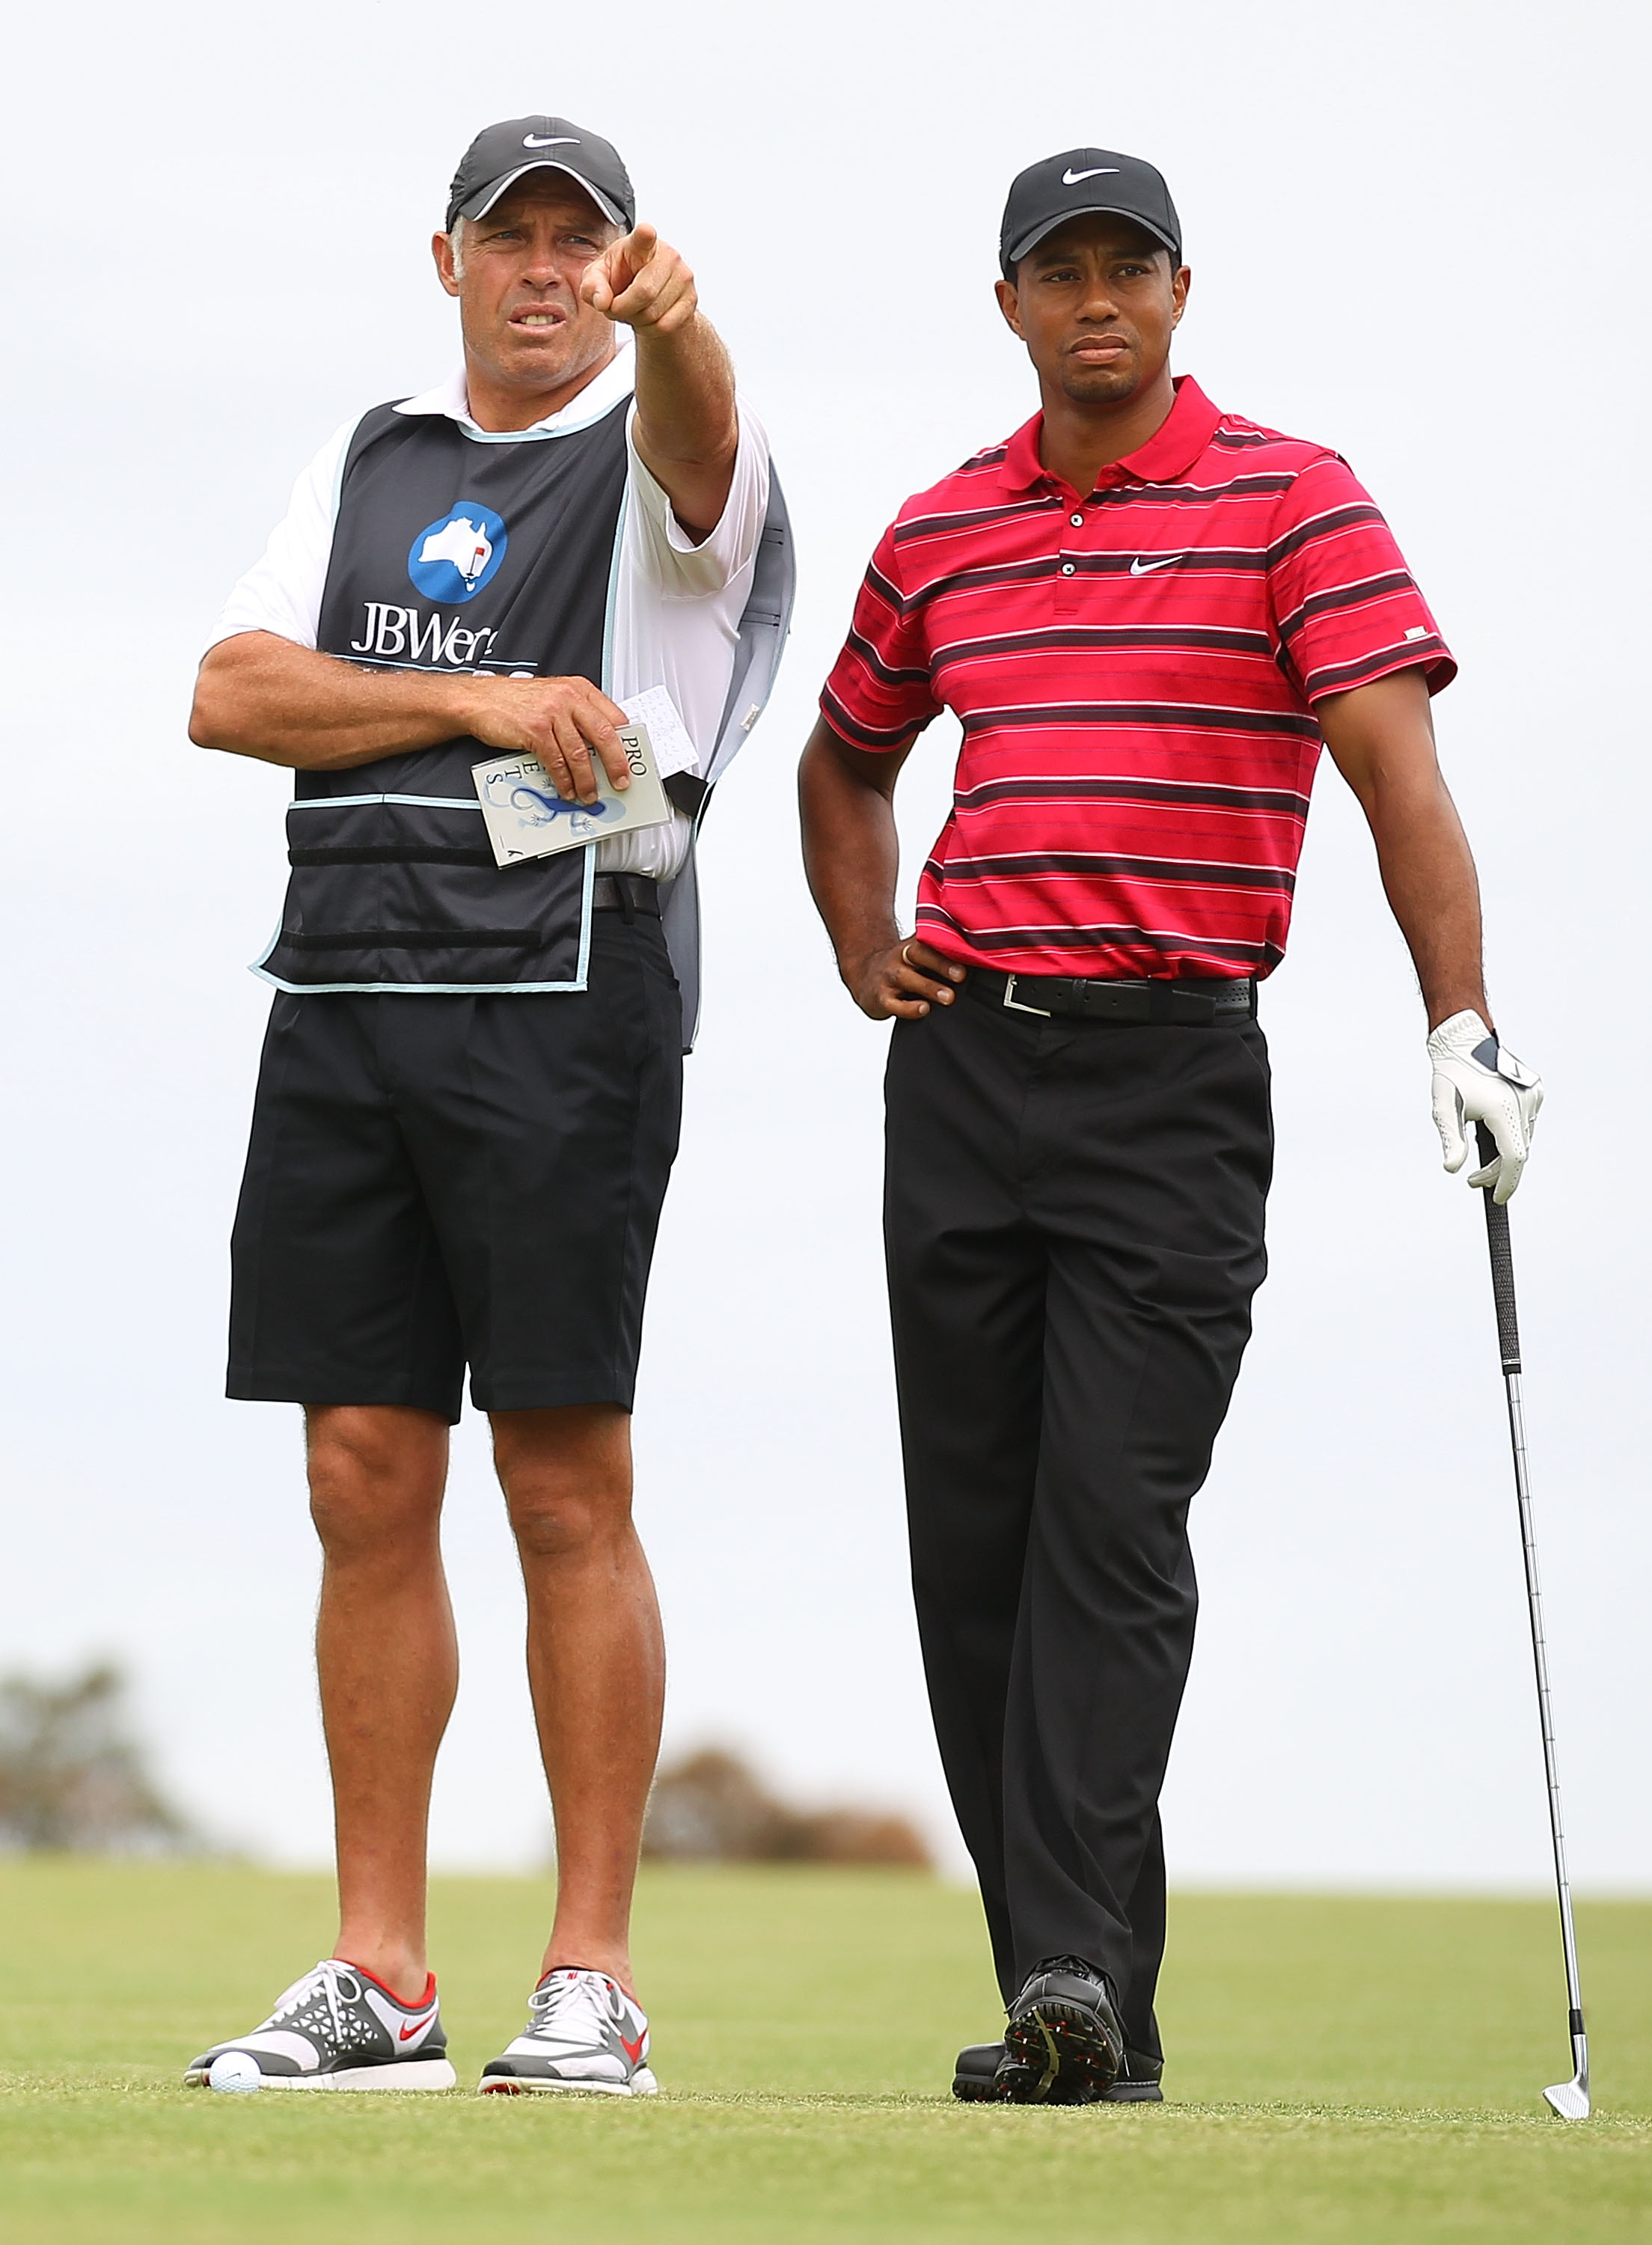 MELBOURNE, AUSTRALIA - NOVEMBER 14:  Tiger Woods of the USA talks with his caddy Steve Williams during day four of the Australian Masters at The Victoria Golf Club on November 14, 2010 in Melbourne, Australia.  (Photo by Robert Cianflone/Getty Images)